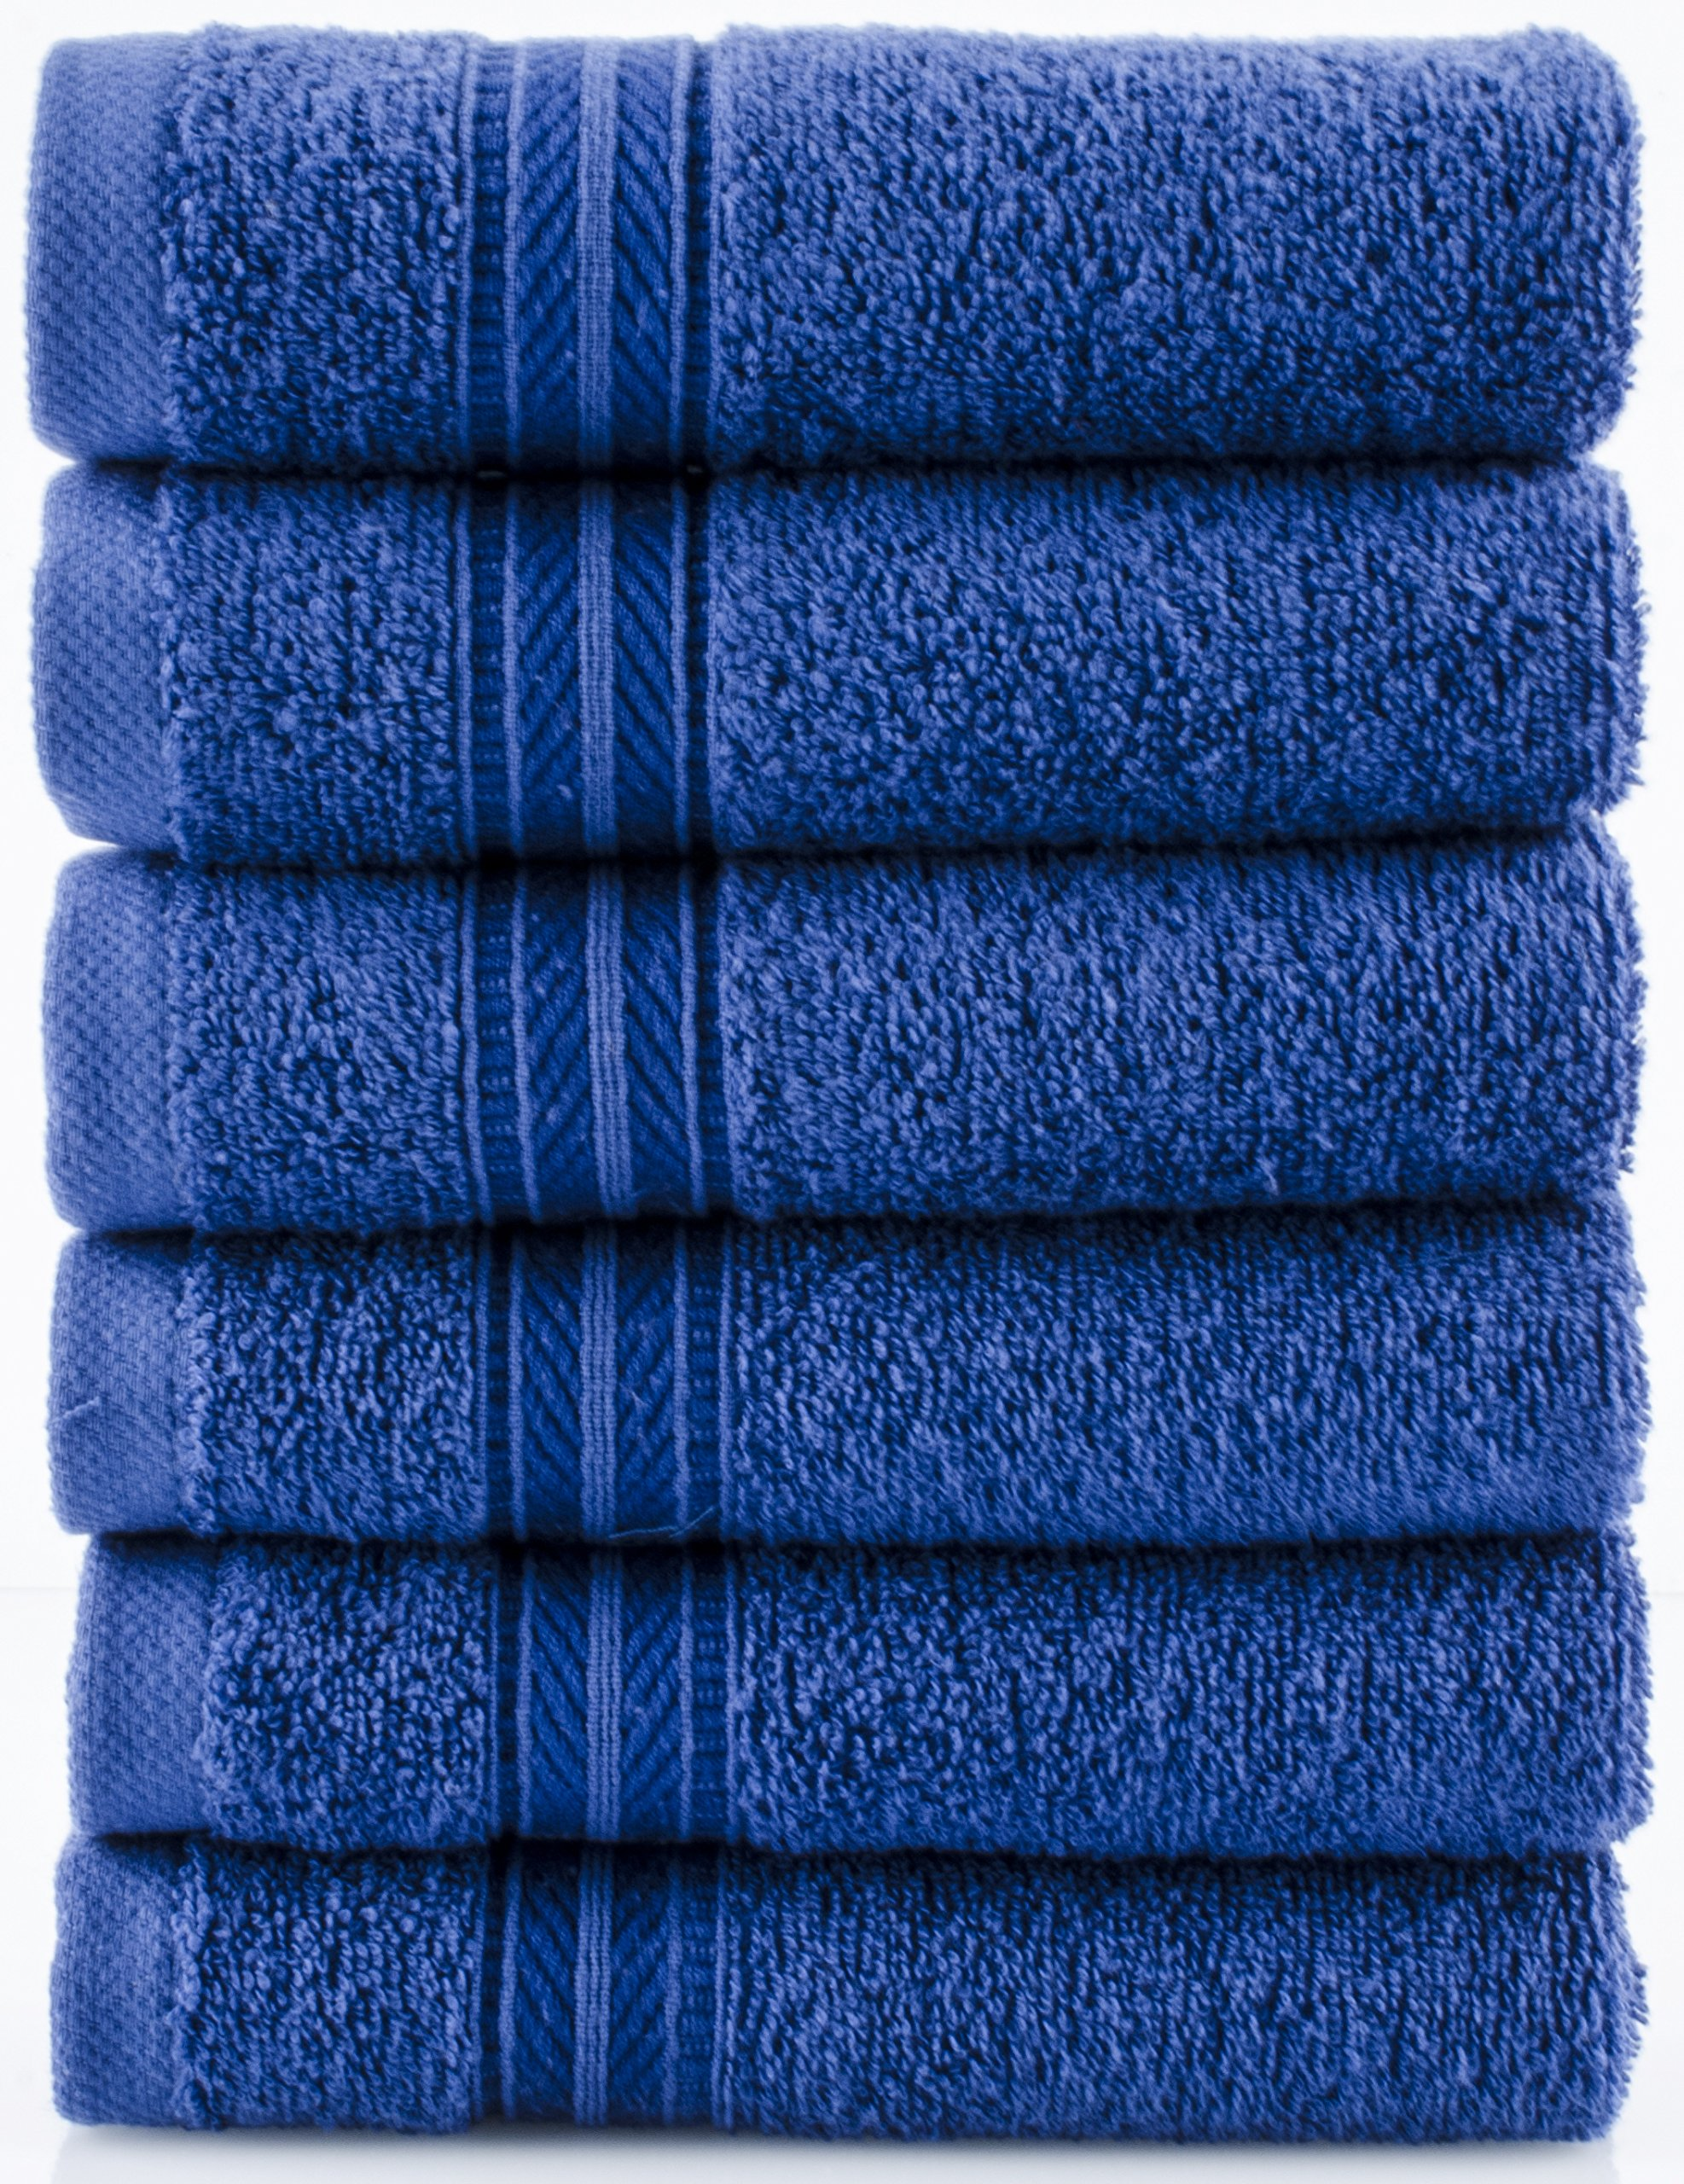 Lunasidus Bergamo, Luxury Hotel / Spa Washcloths, 100 Percent Genuine Turkish Cotton, Set of 6, 700 Gram - Navy Blue